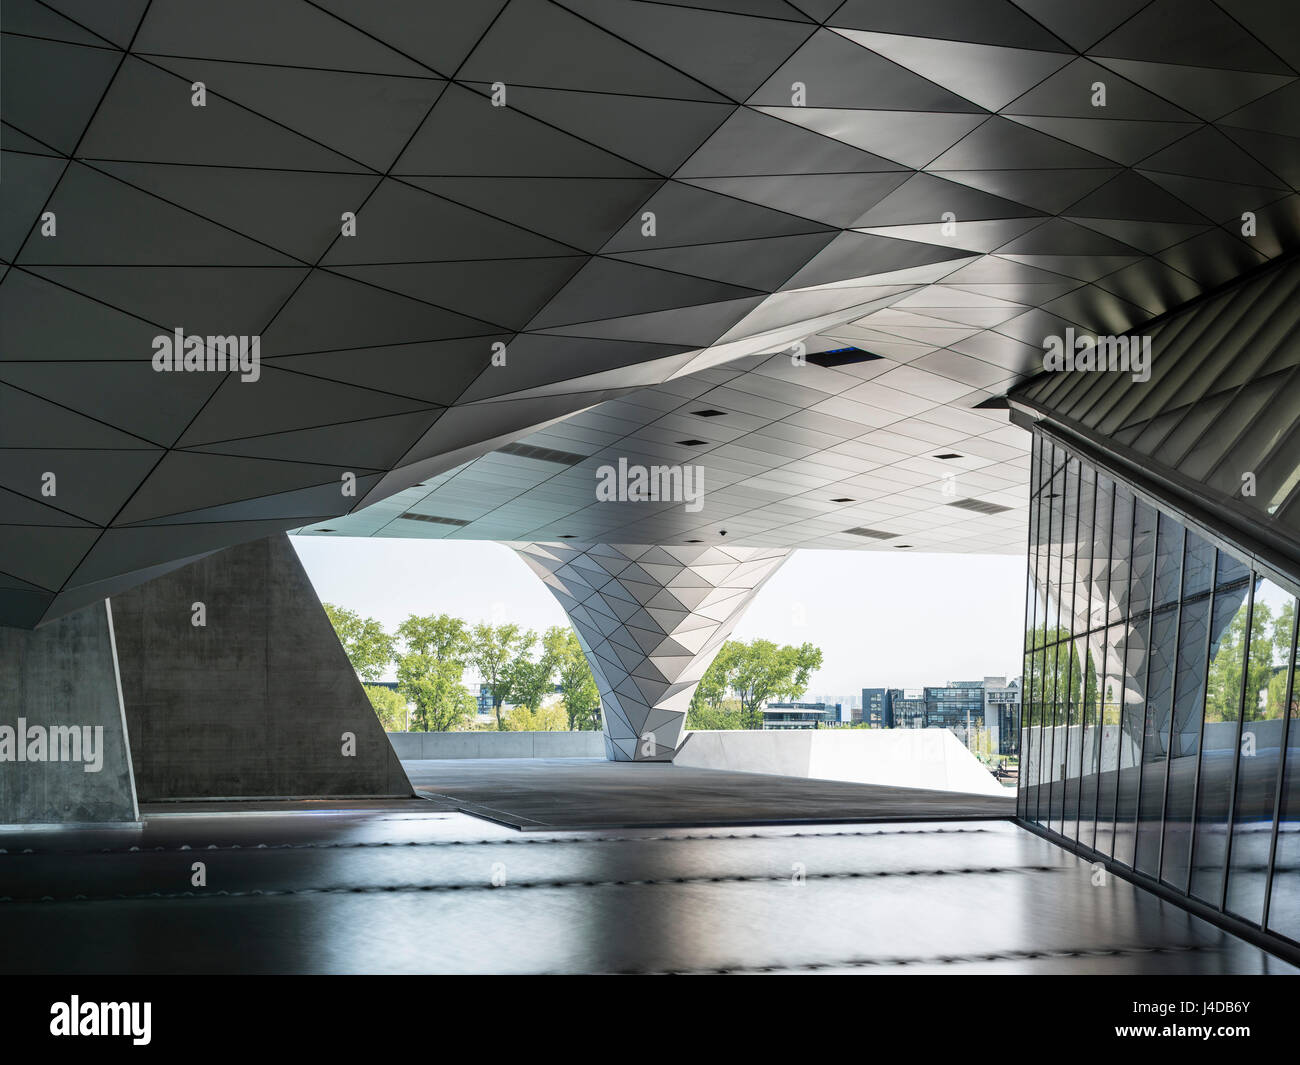 View of the public space underneath the building with illuminated pool. Musée des Confluences, Lyon, France. - Stock Image